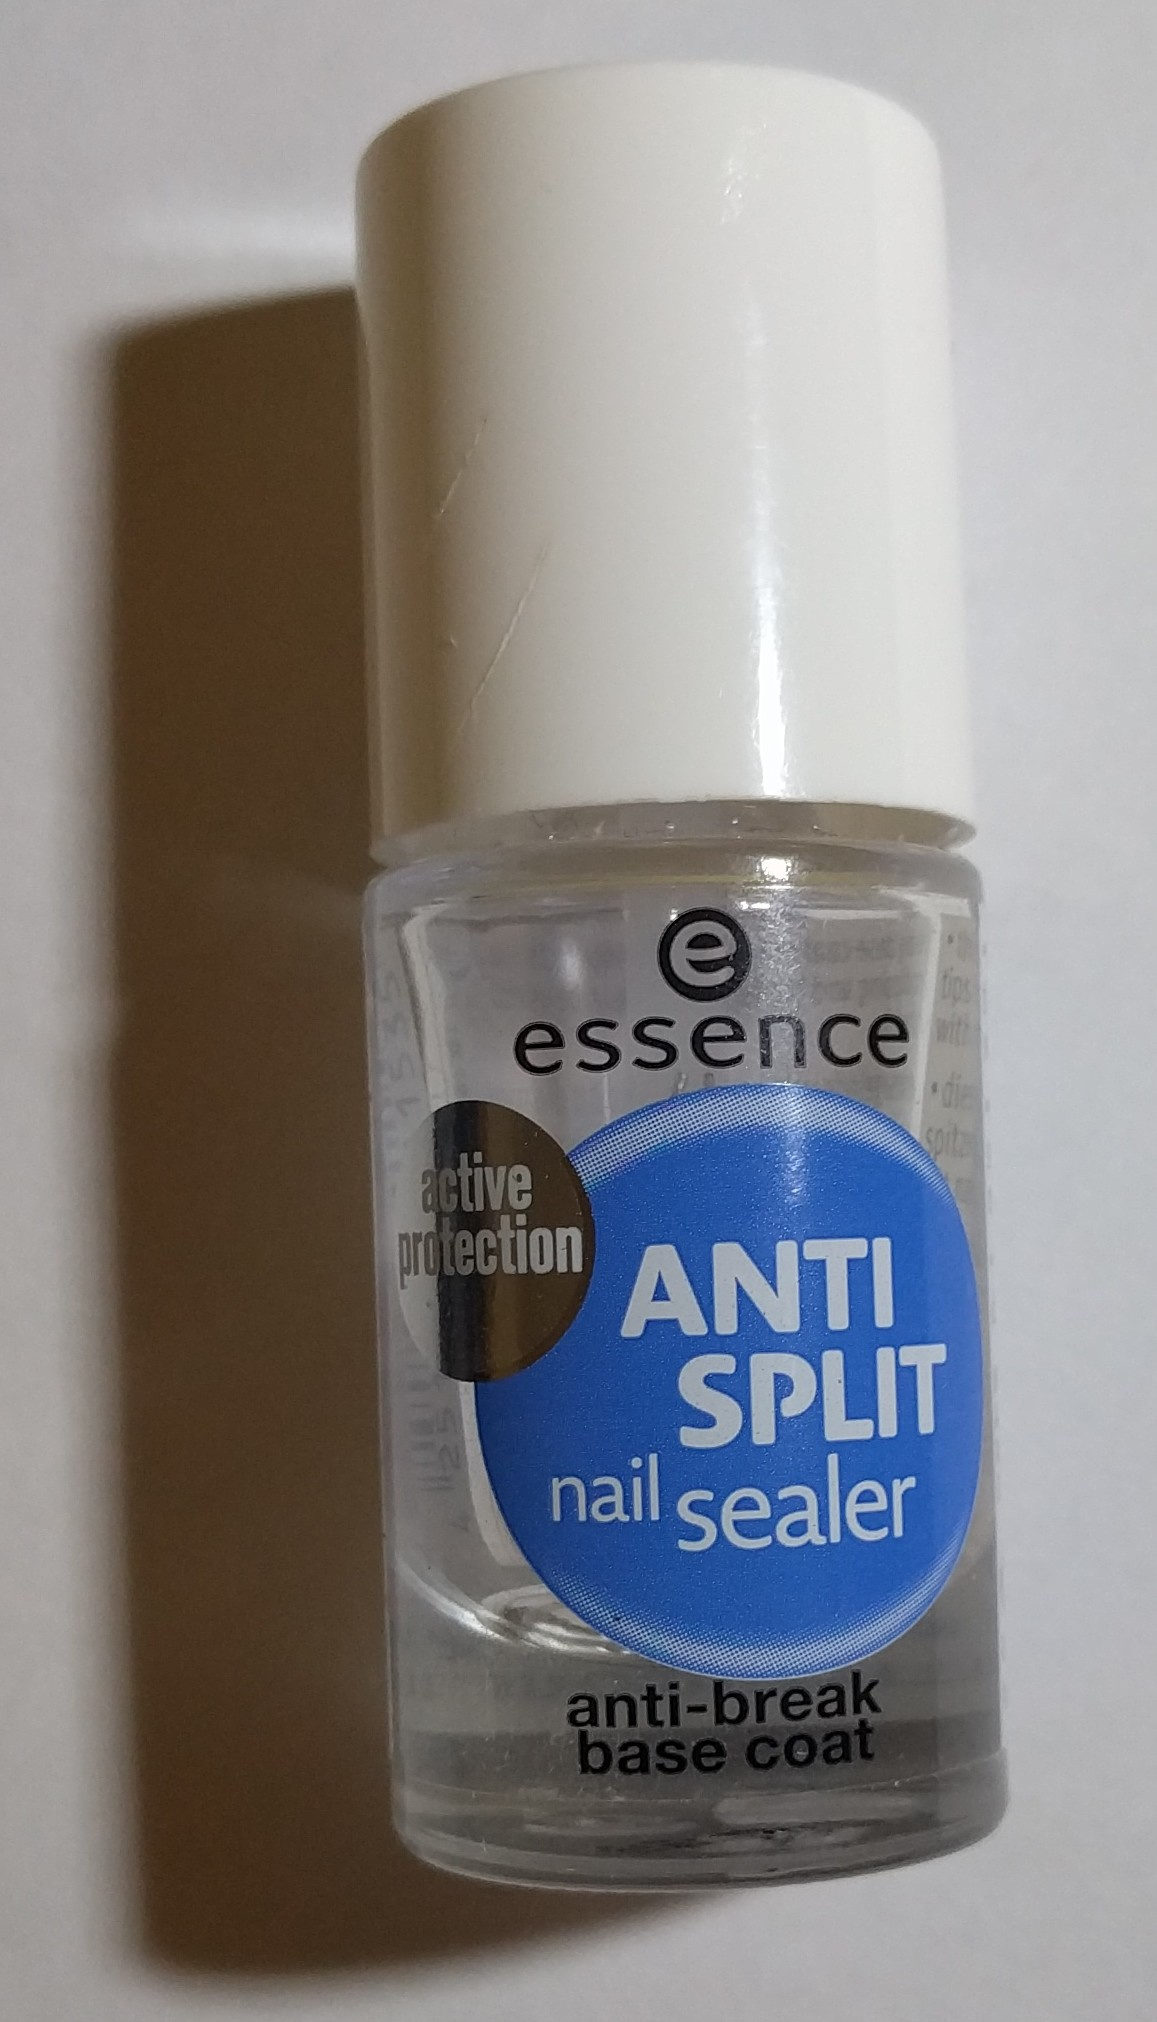 Anti Split nail sealer - Продукт - en